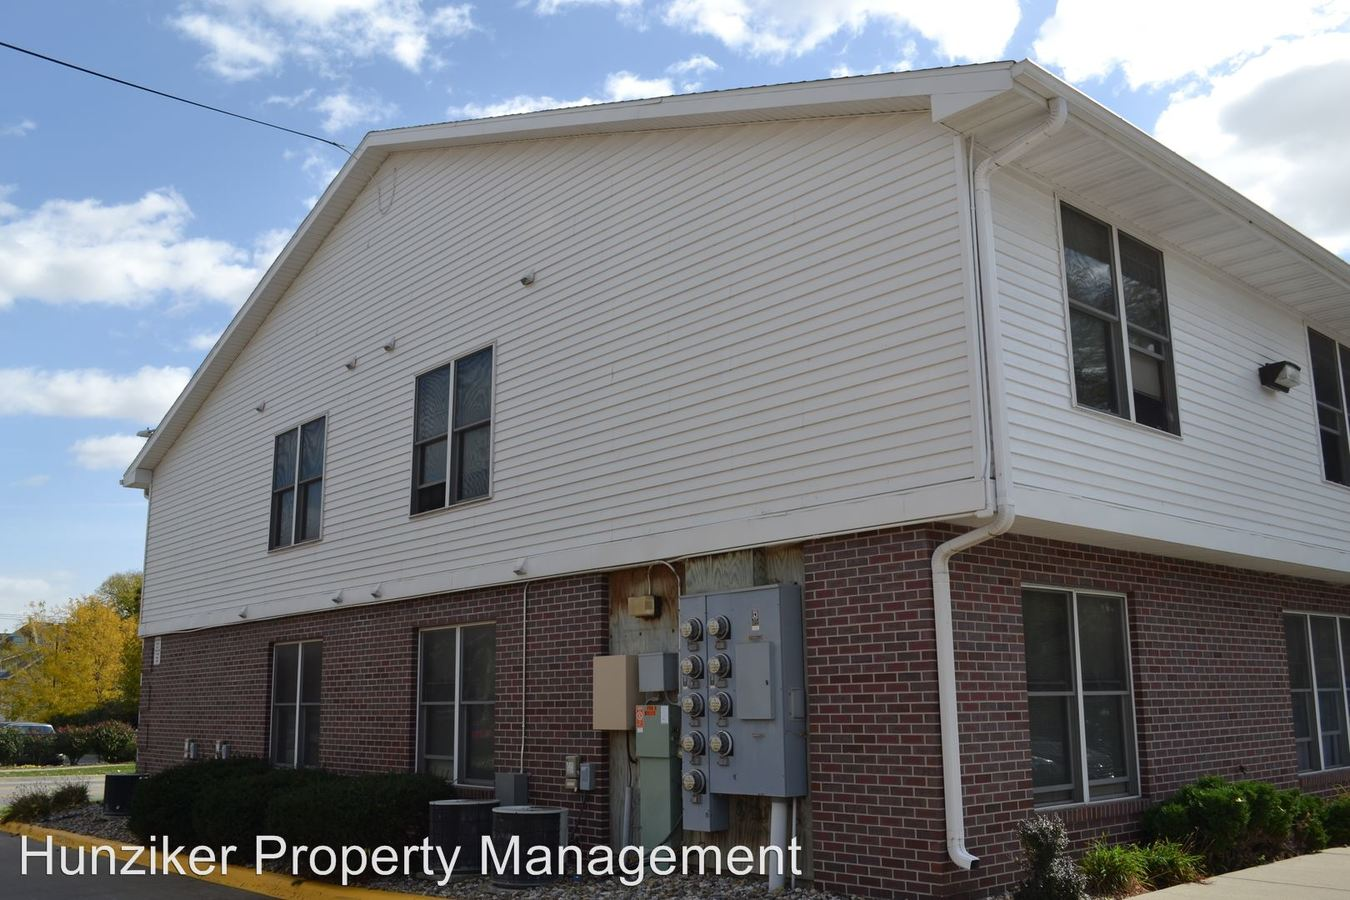 2 Bedrooms 2 Bathrooms Apartment for rent at 145 N. Hyland in Ames, IA